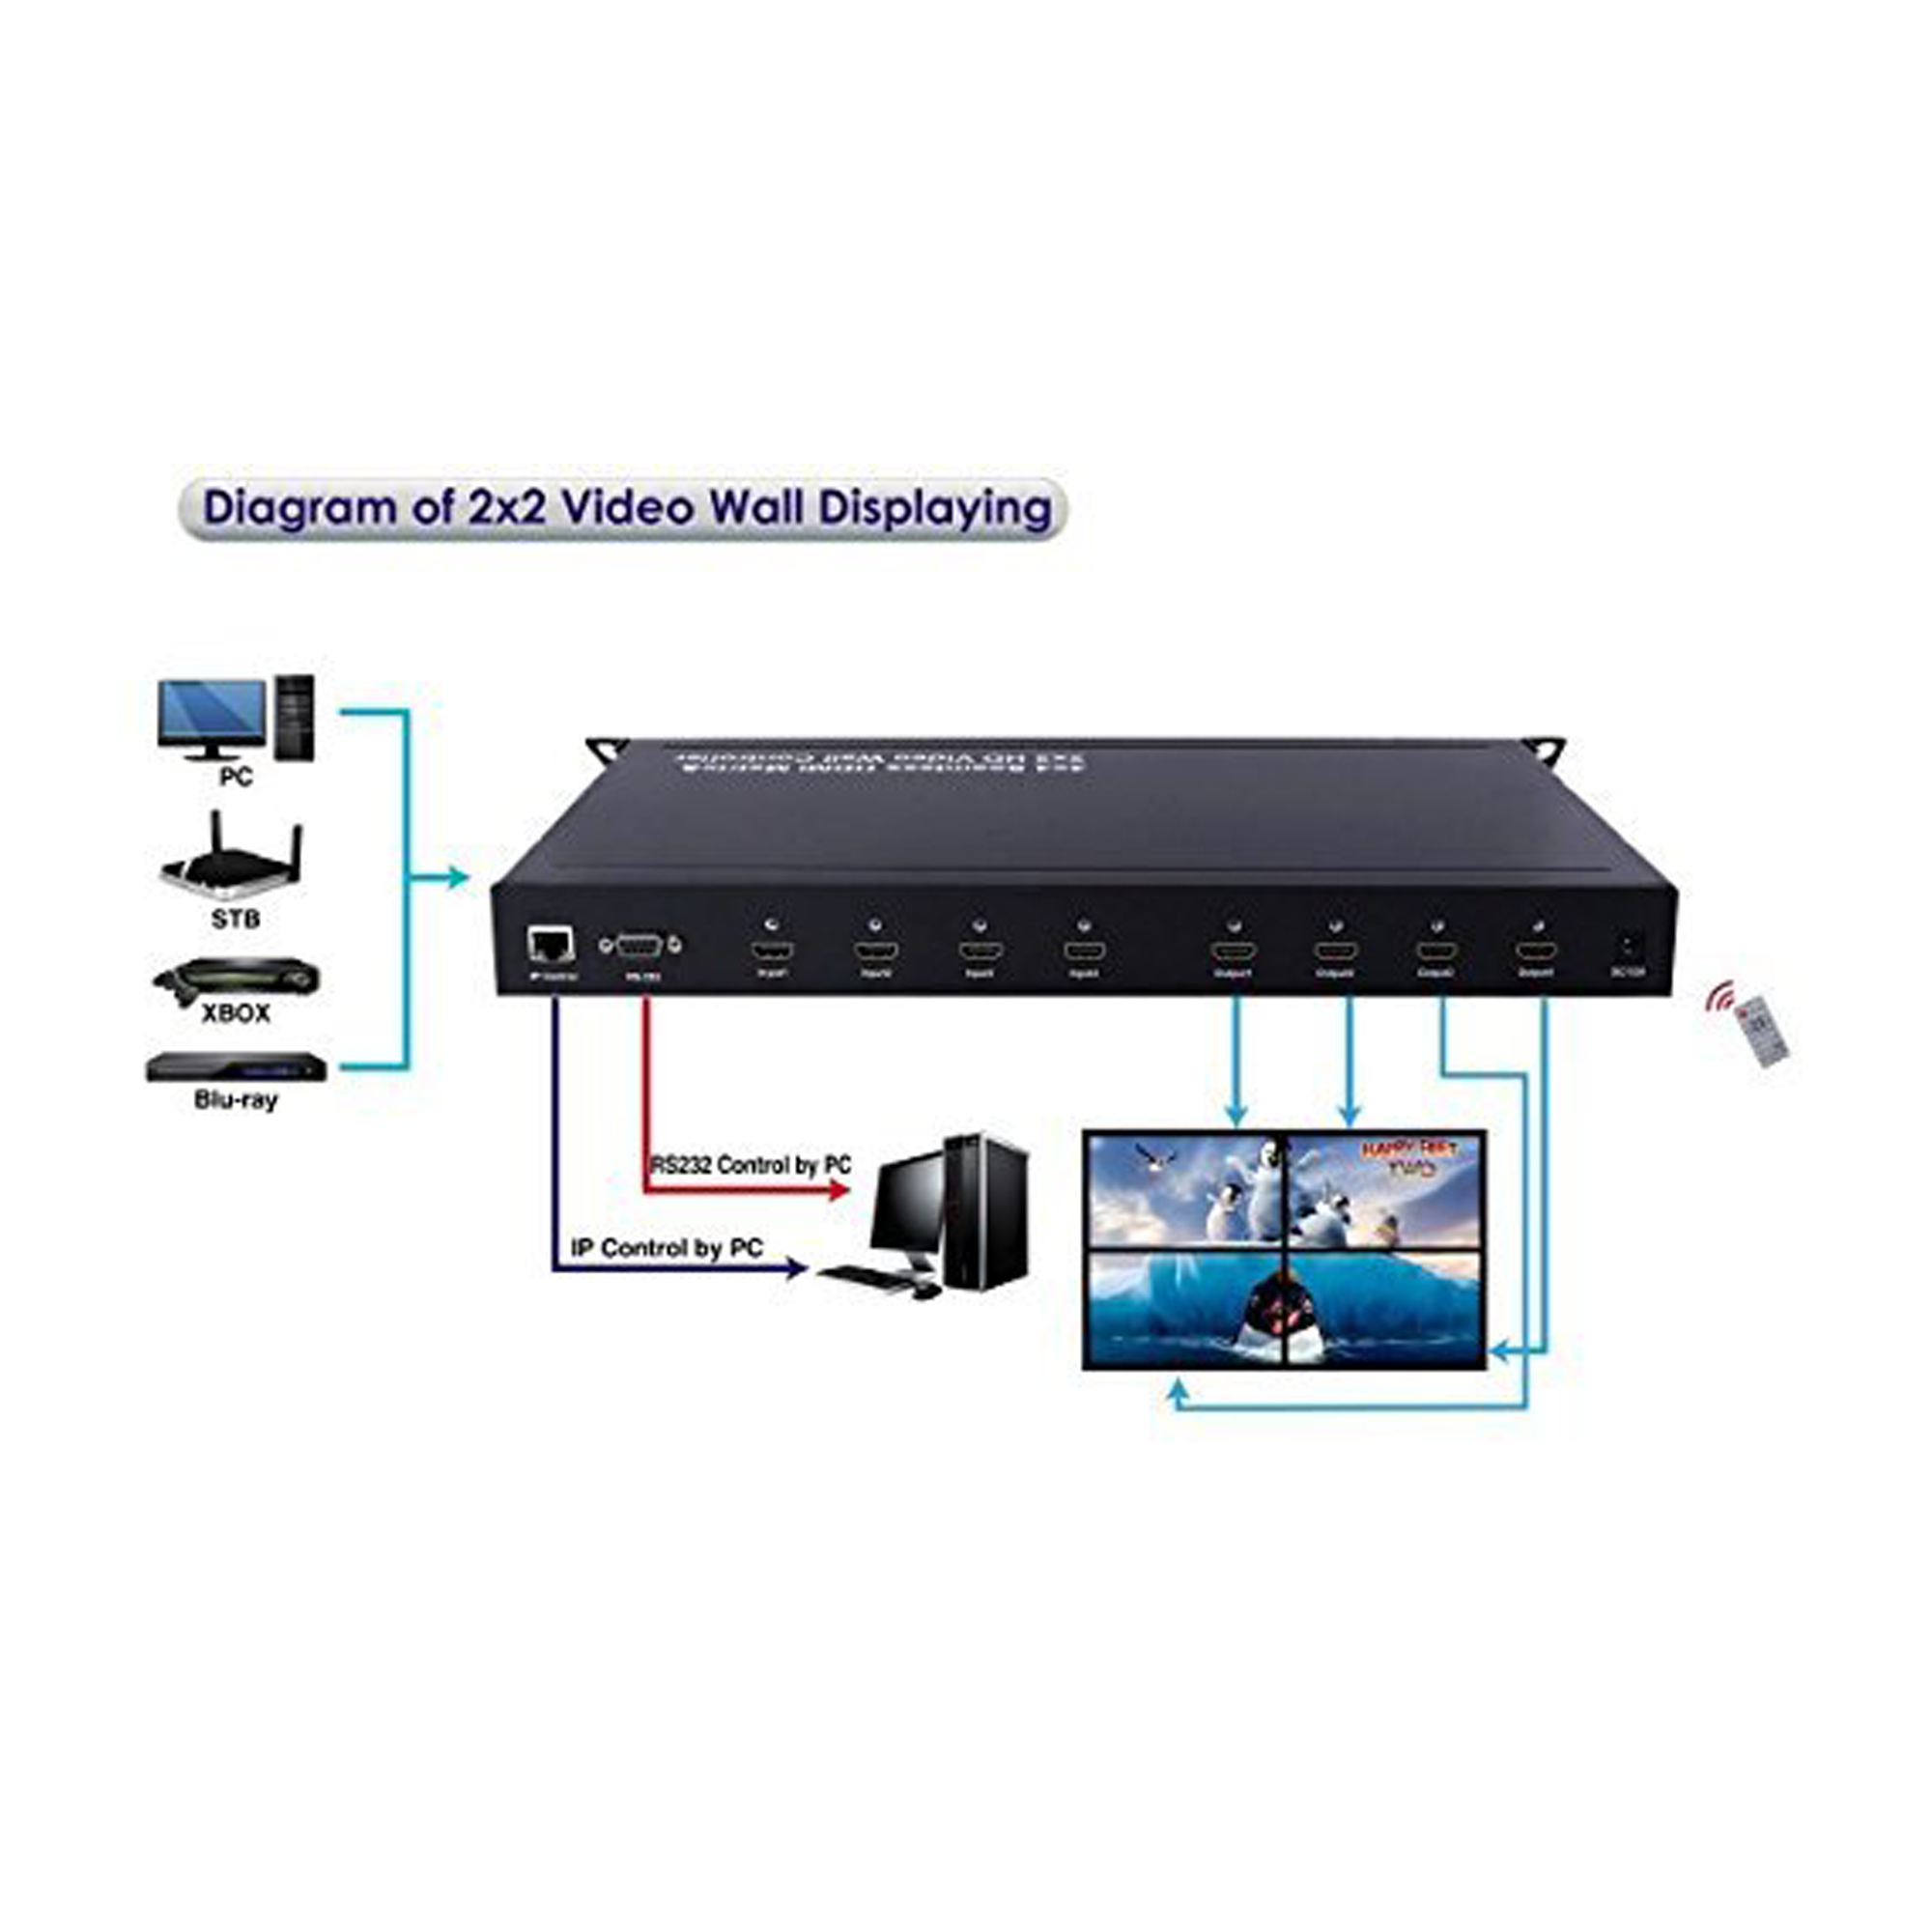 2X2 HDMI Video Wall Seamless 4x4 Matrix Switch Control4